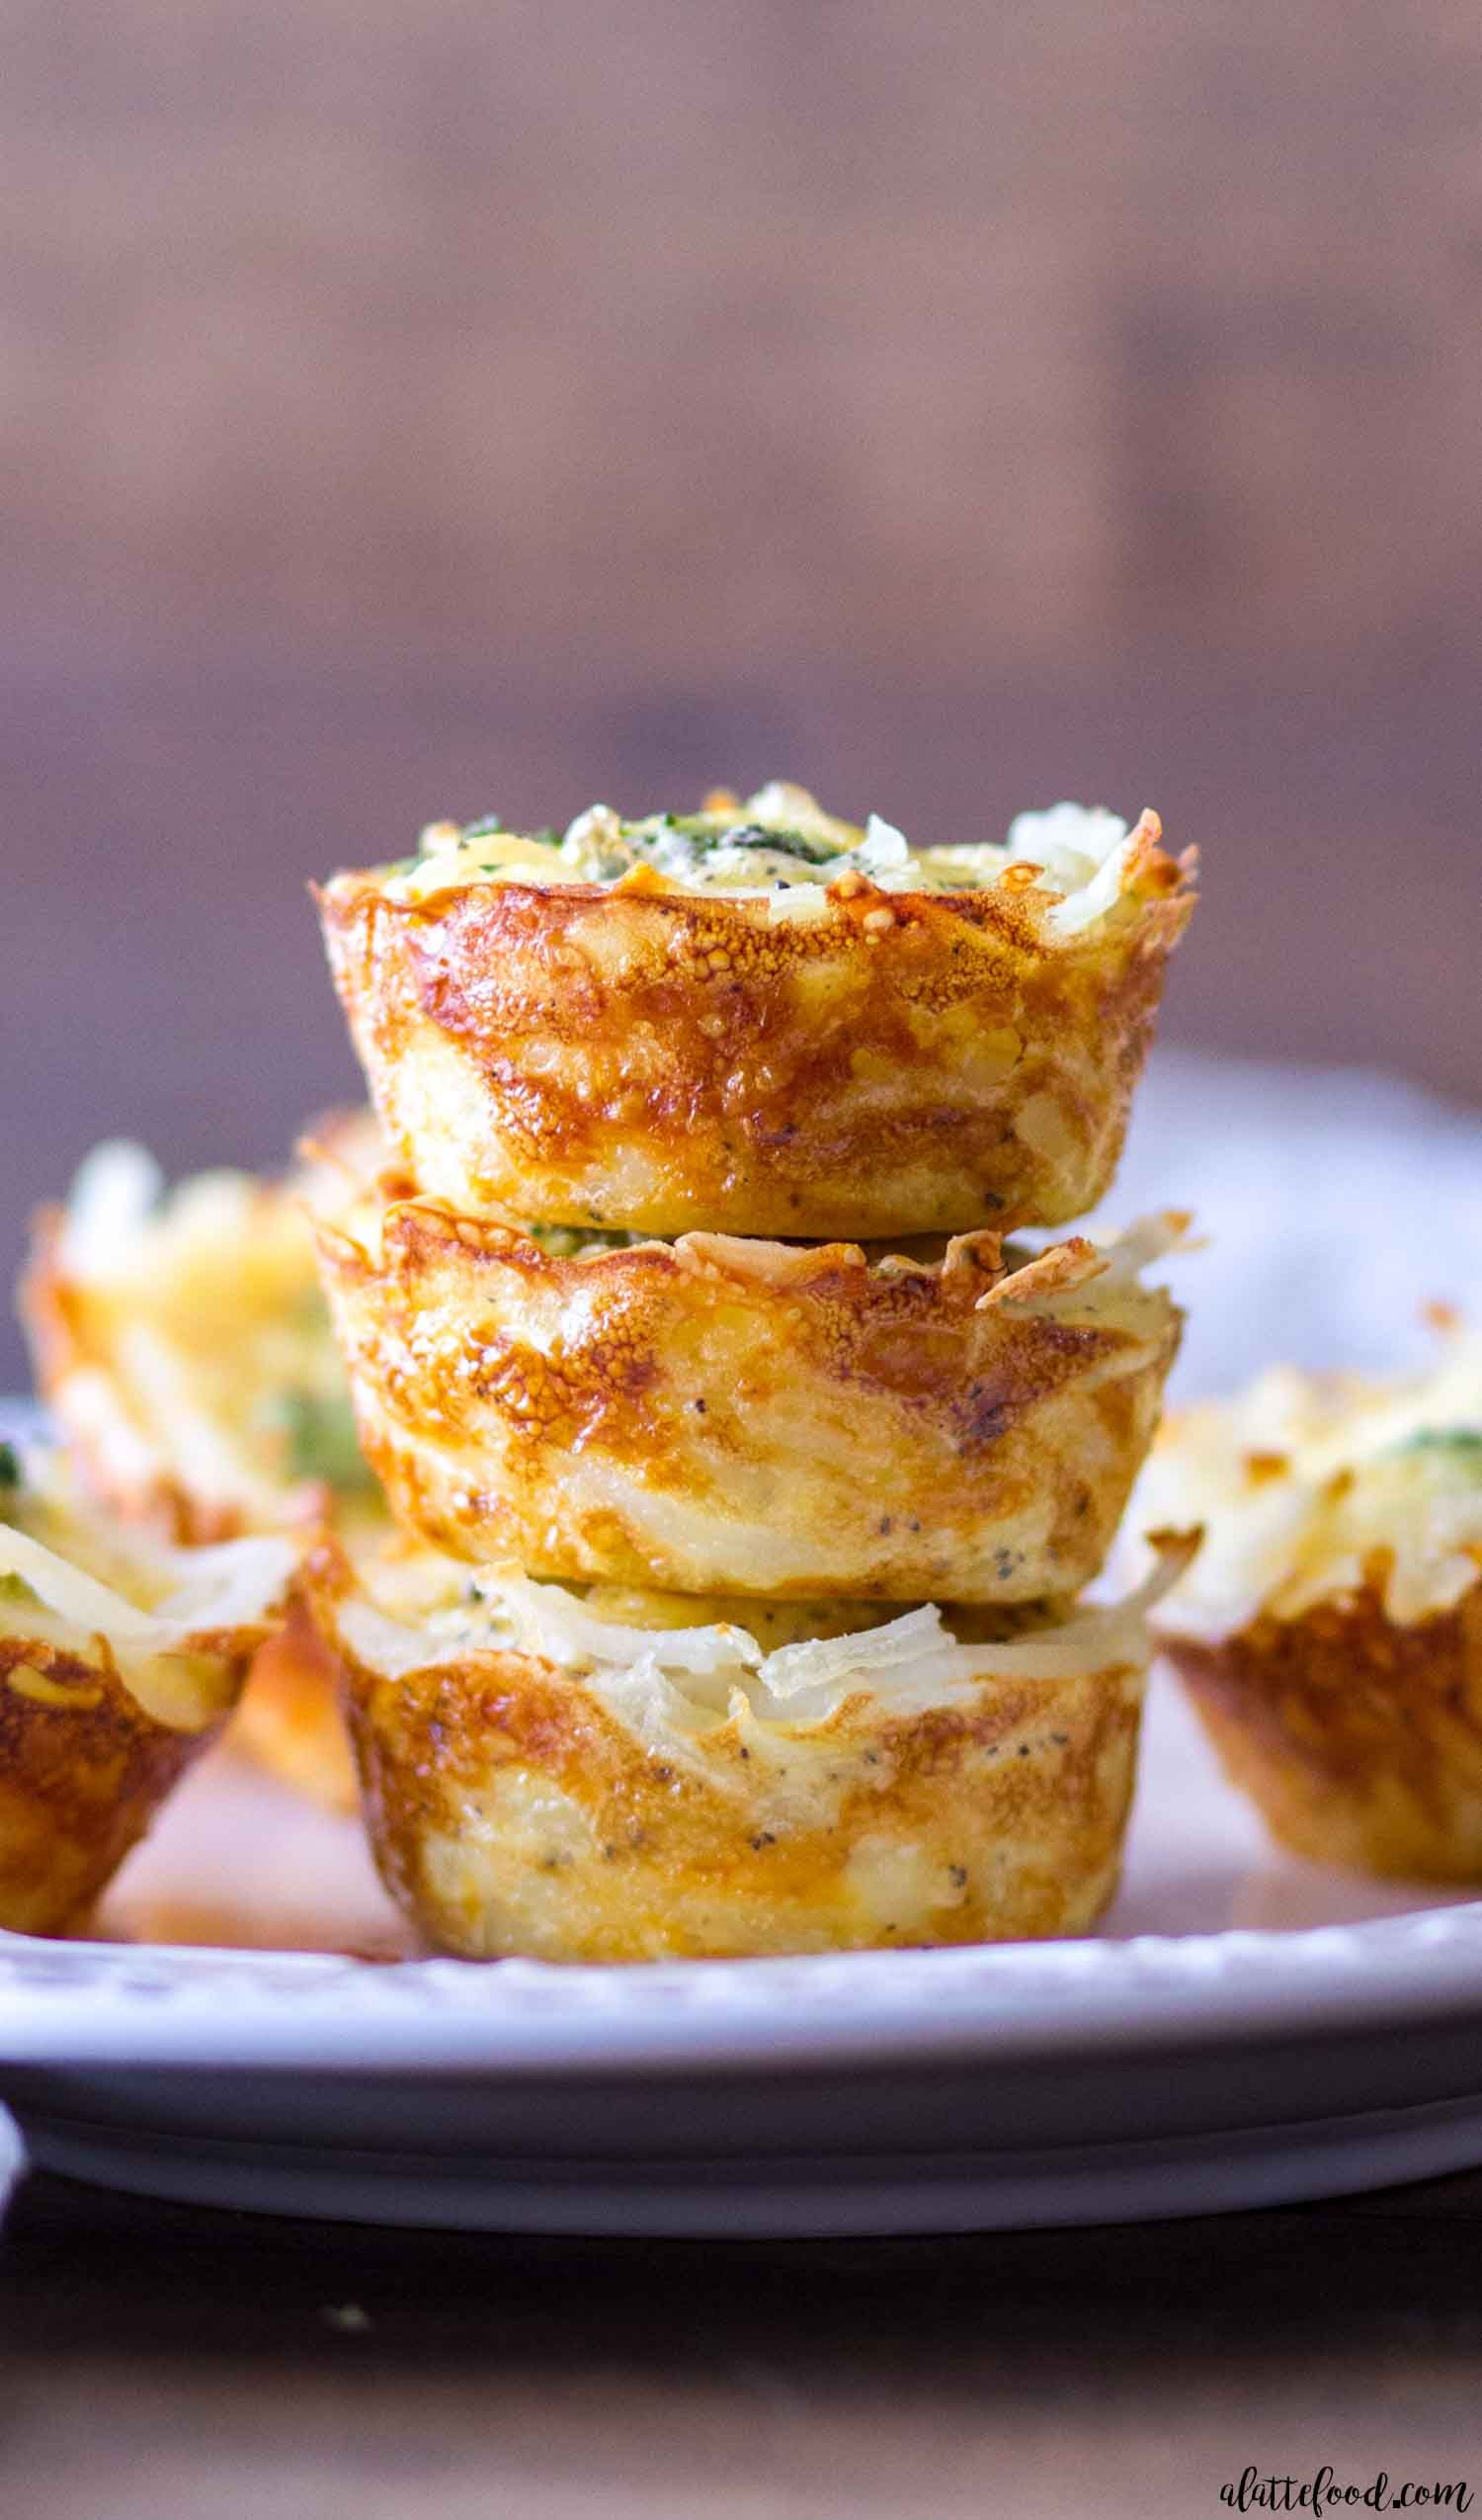 This homemade quiche recipe is for Hash Brown Crusted